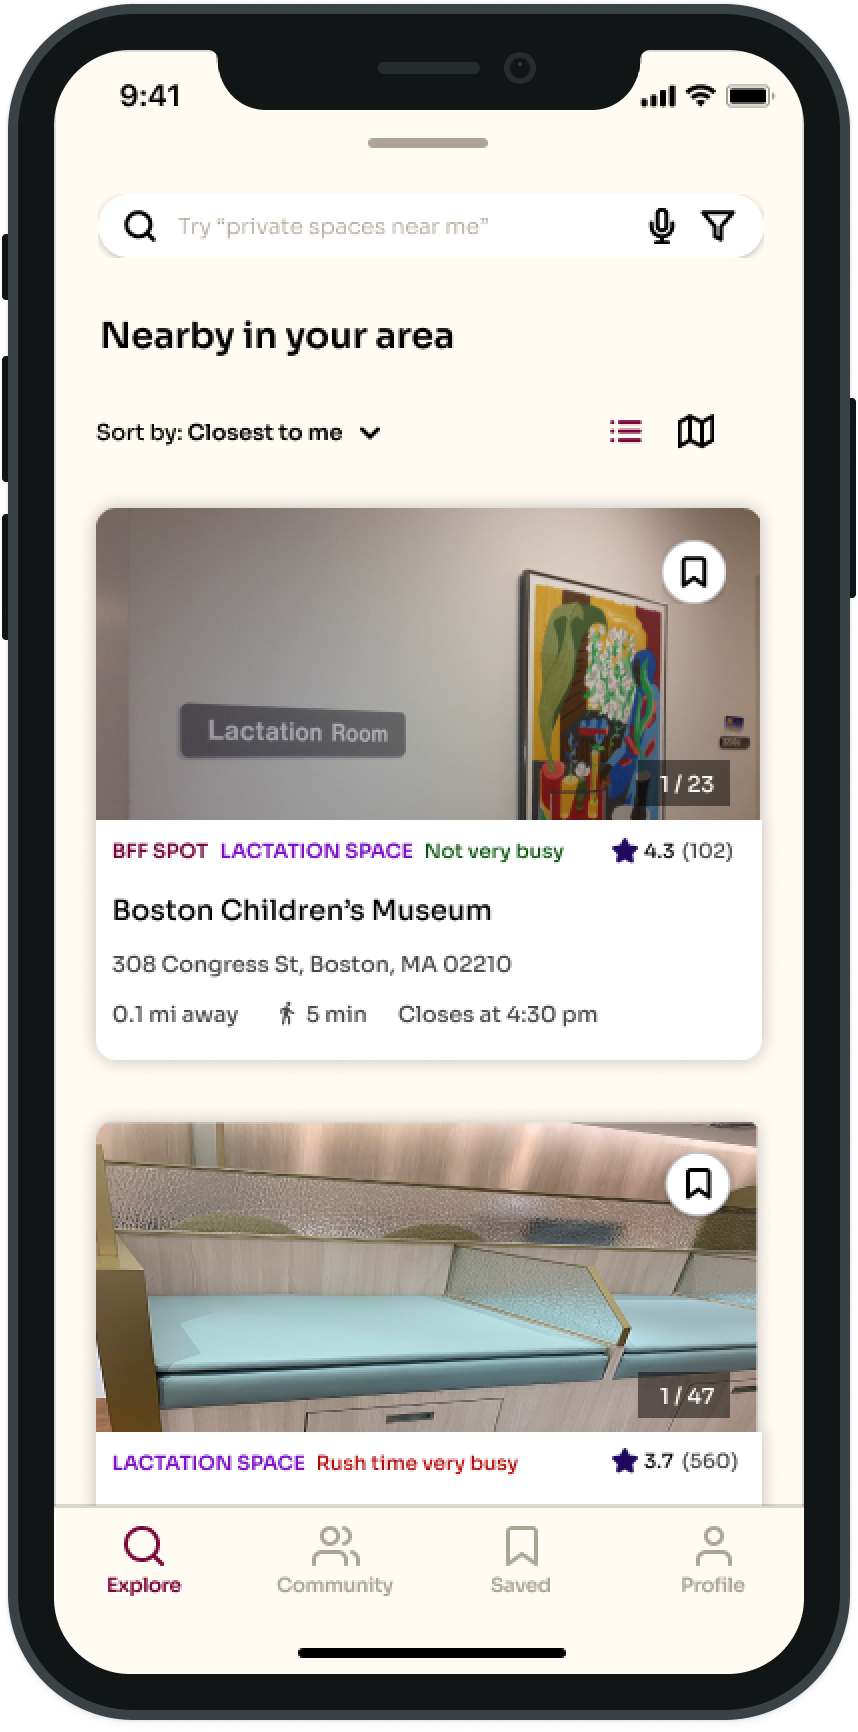 An iOS app showing nearby lactation spaces.